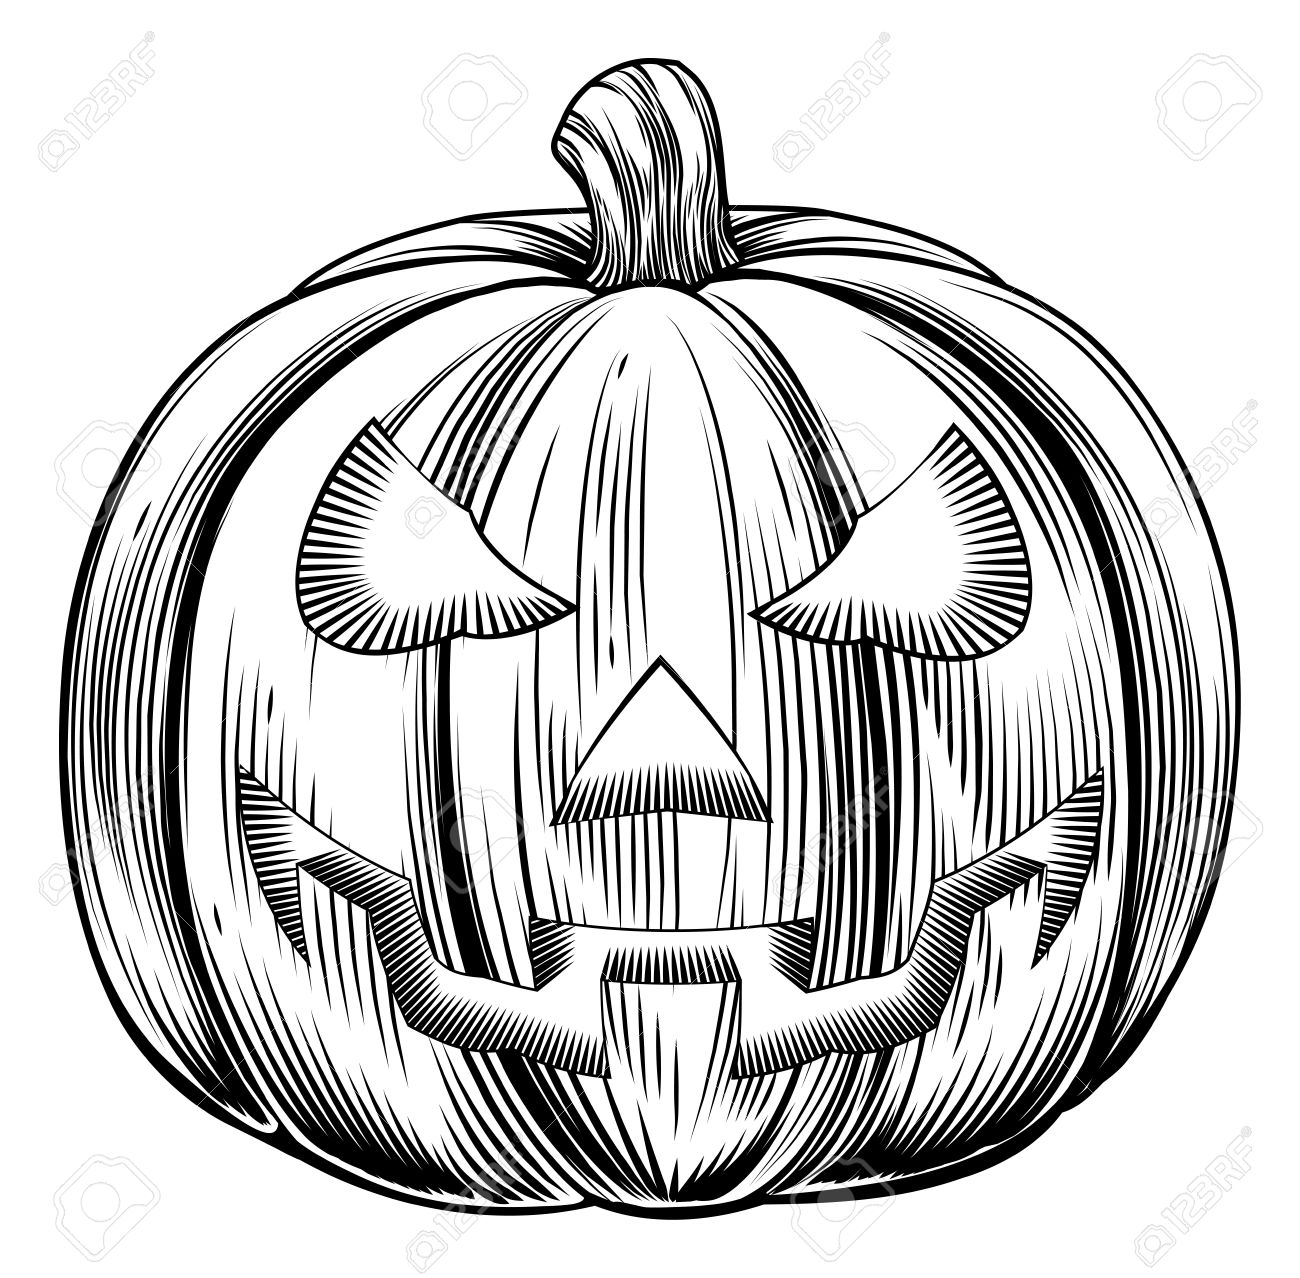 An Illustration Of A Halloween Pumpkin In A Retro Vintage.